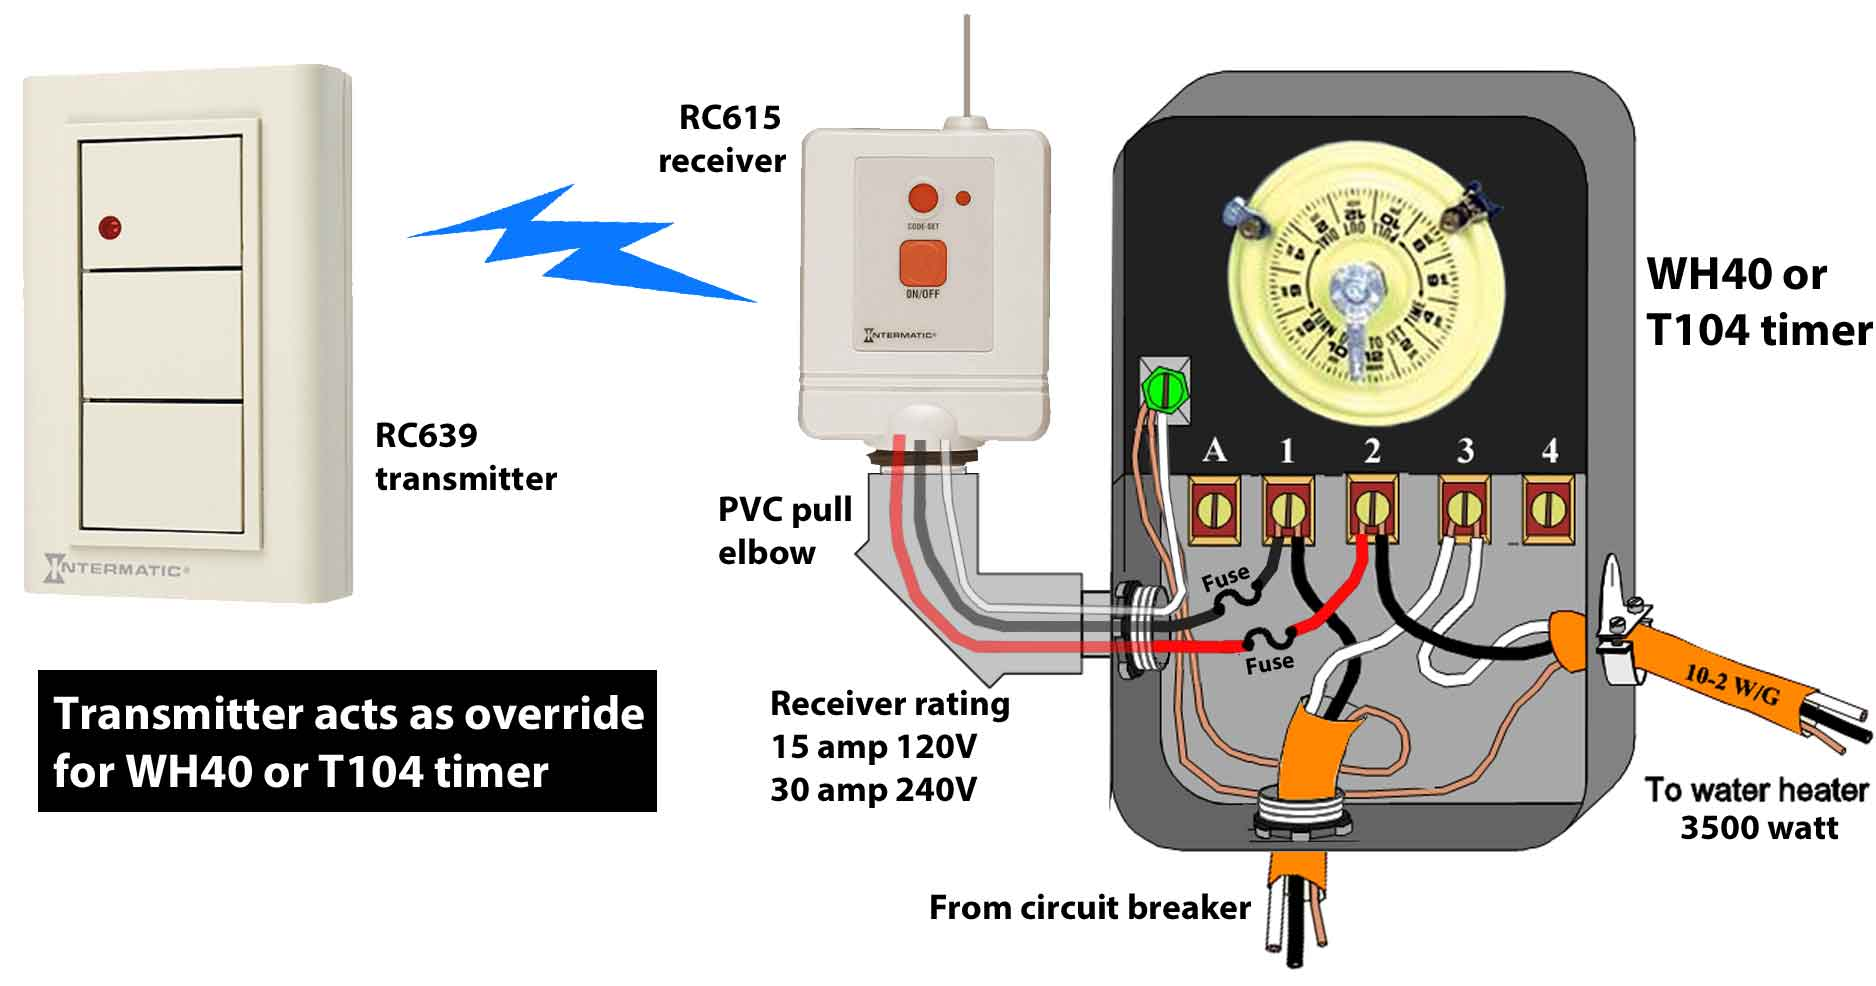 Intermatic remote RC control how to wire wh40 water heater timer time clock wiring diagram at bayanpartner.co